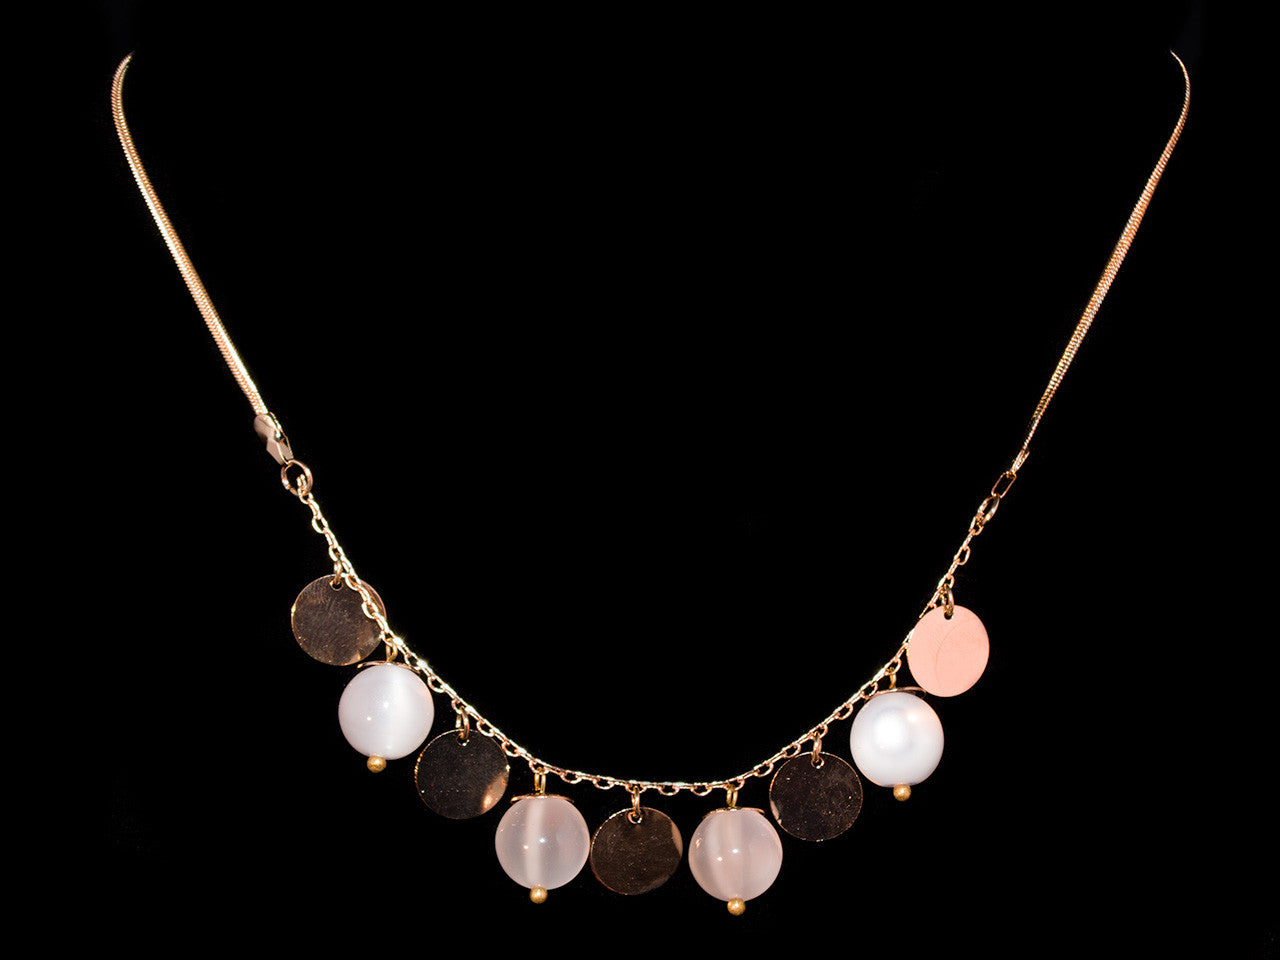 Gold Opal Decorative Necklace